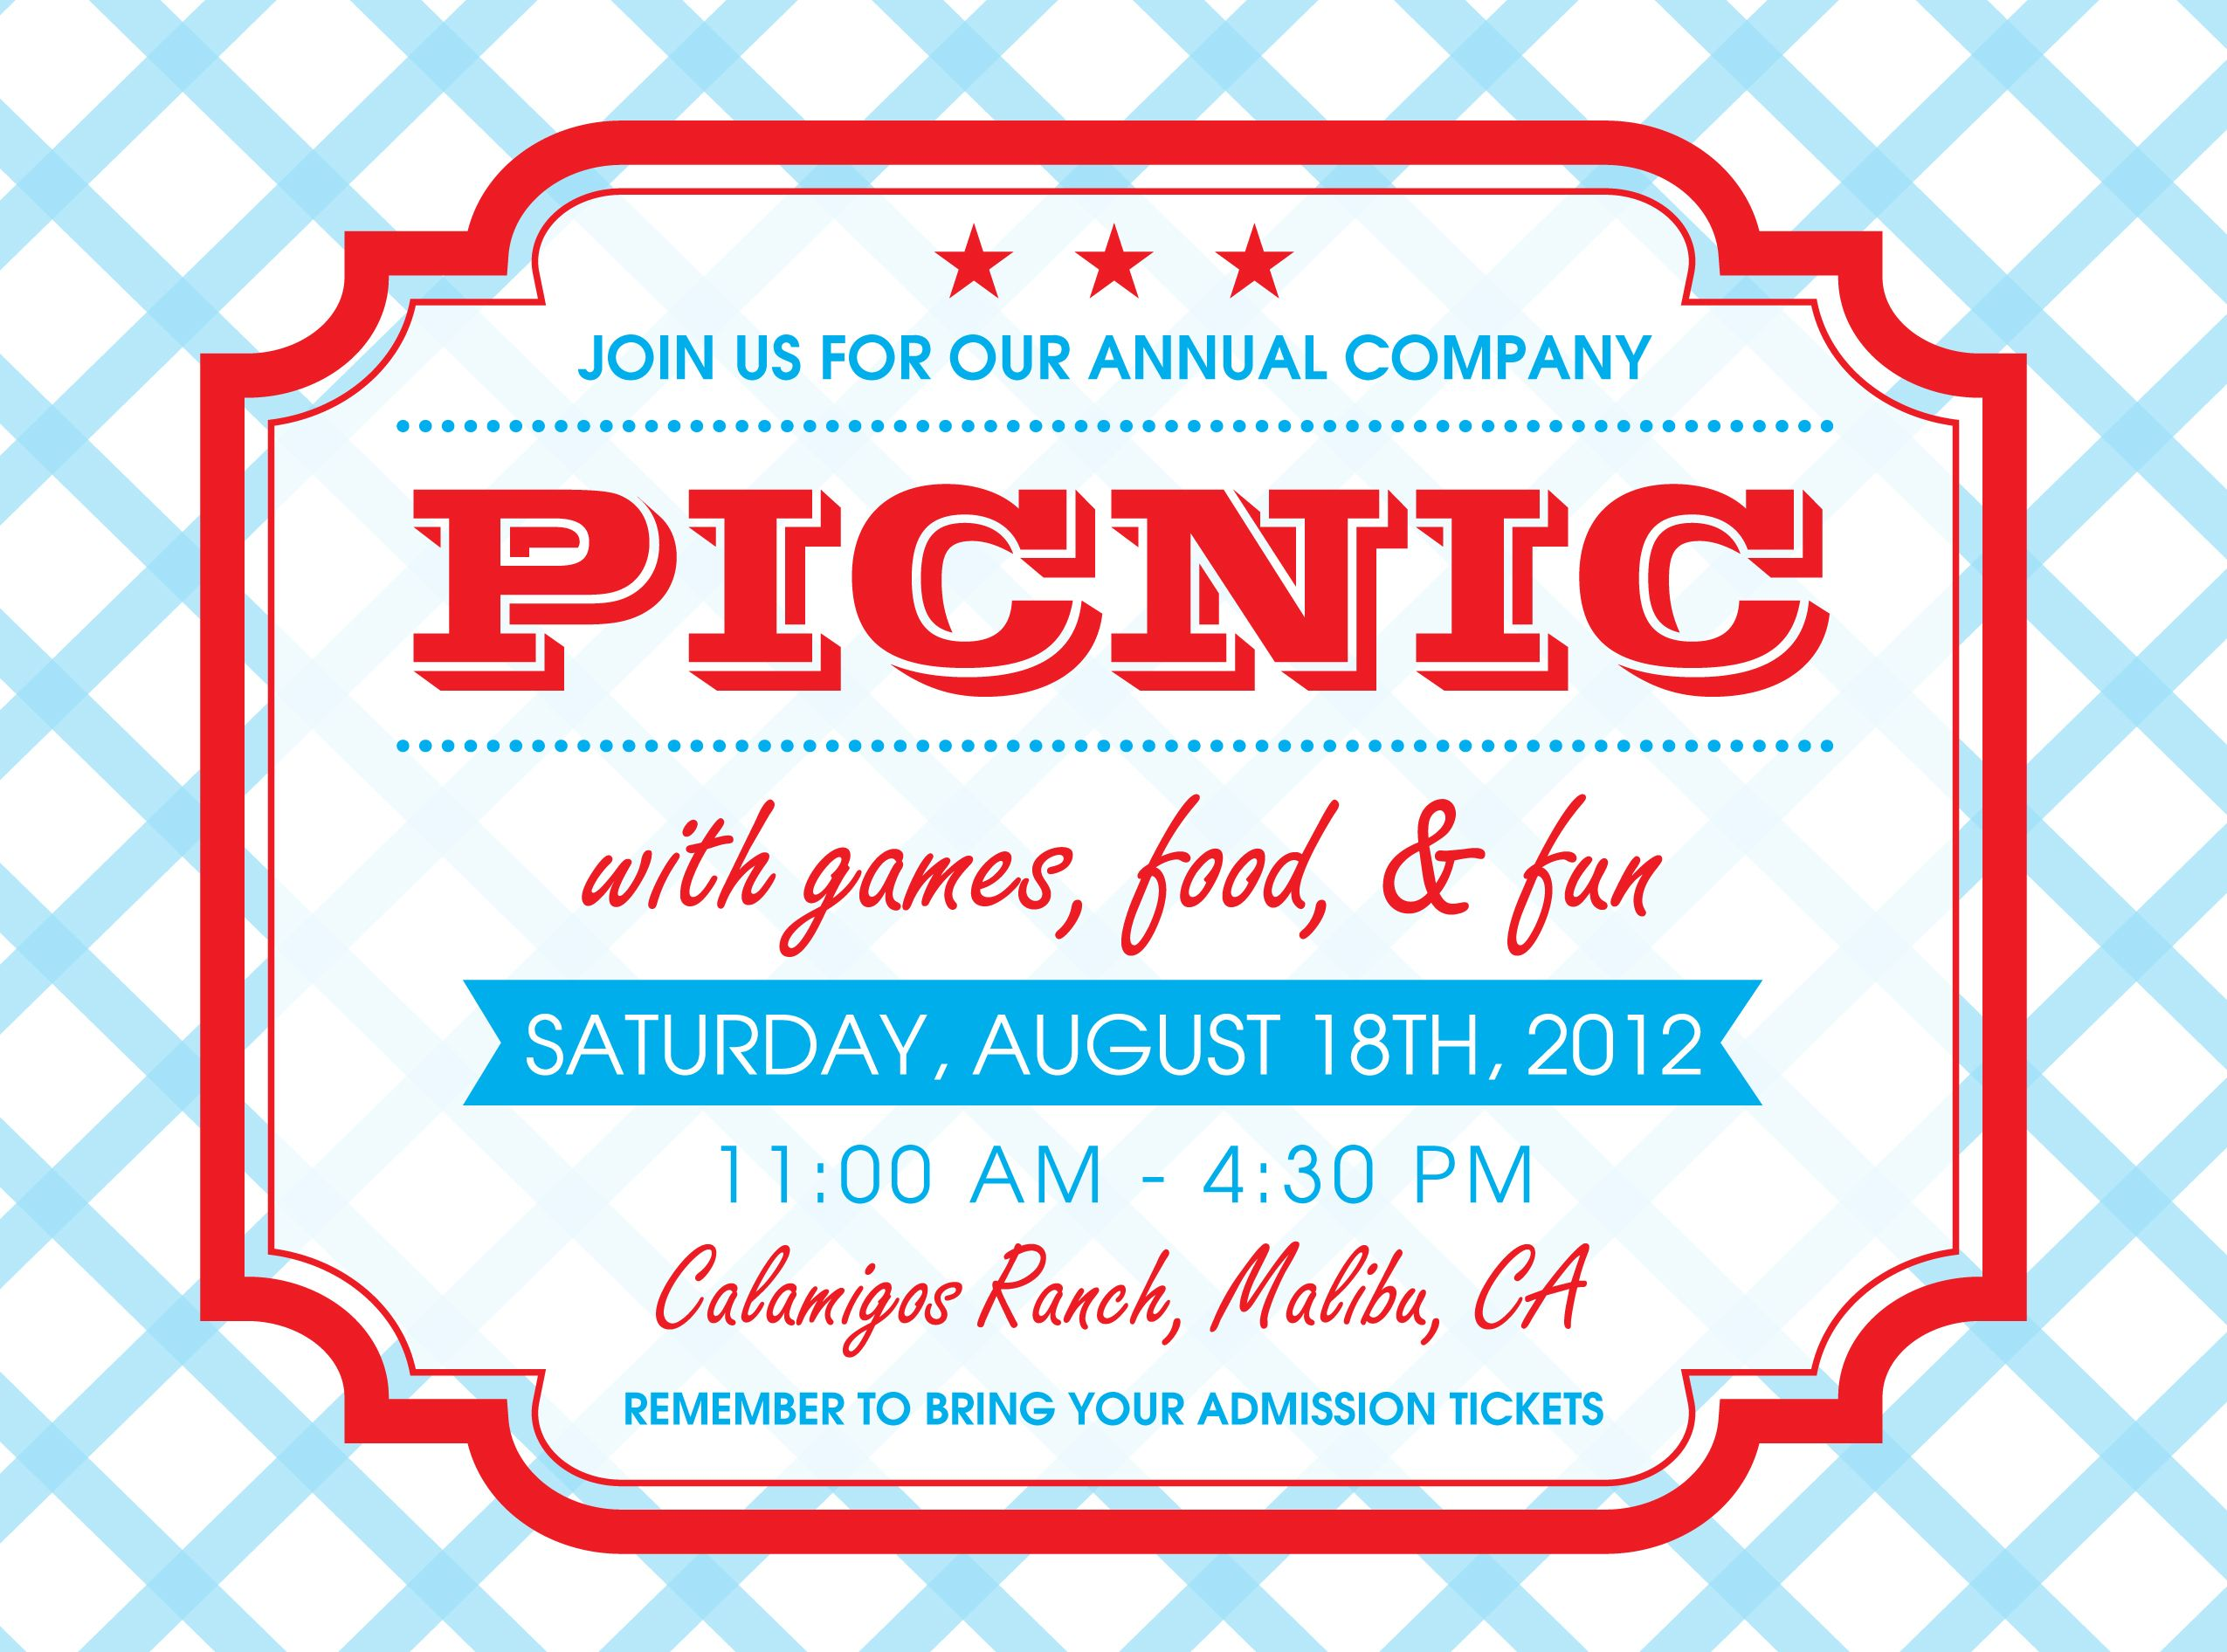 Picnic Invitation Design By Megan Hoeffliger  My Portfolio